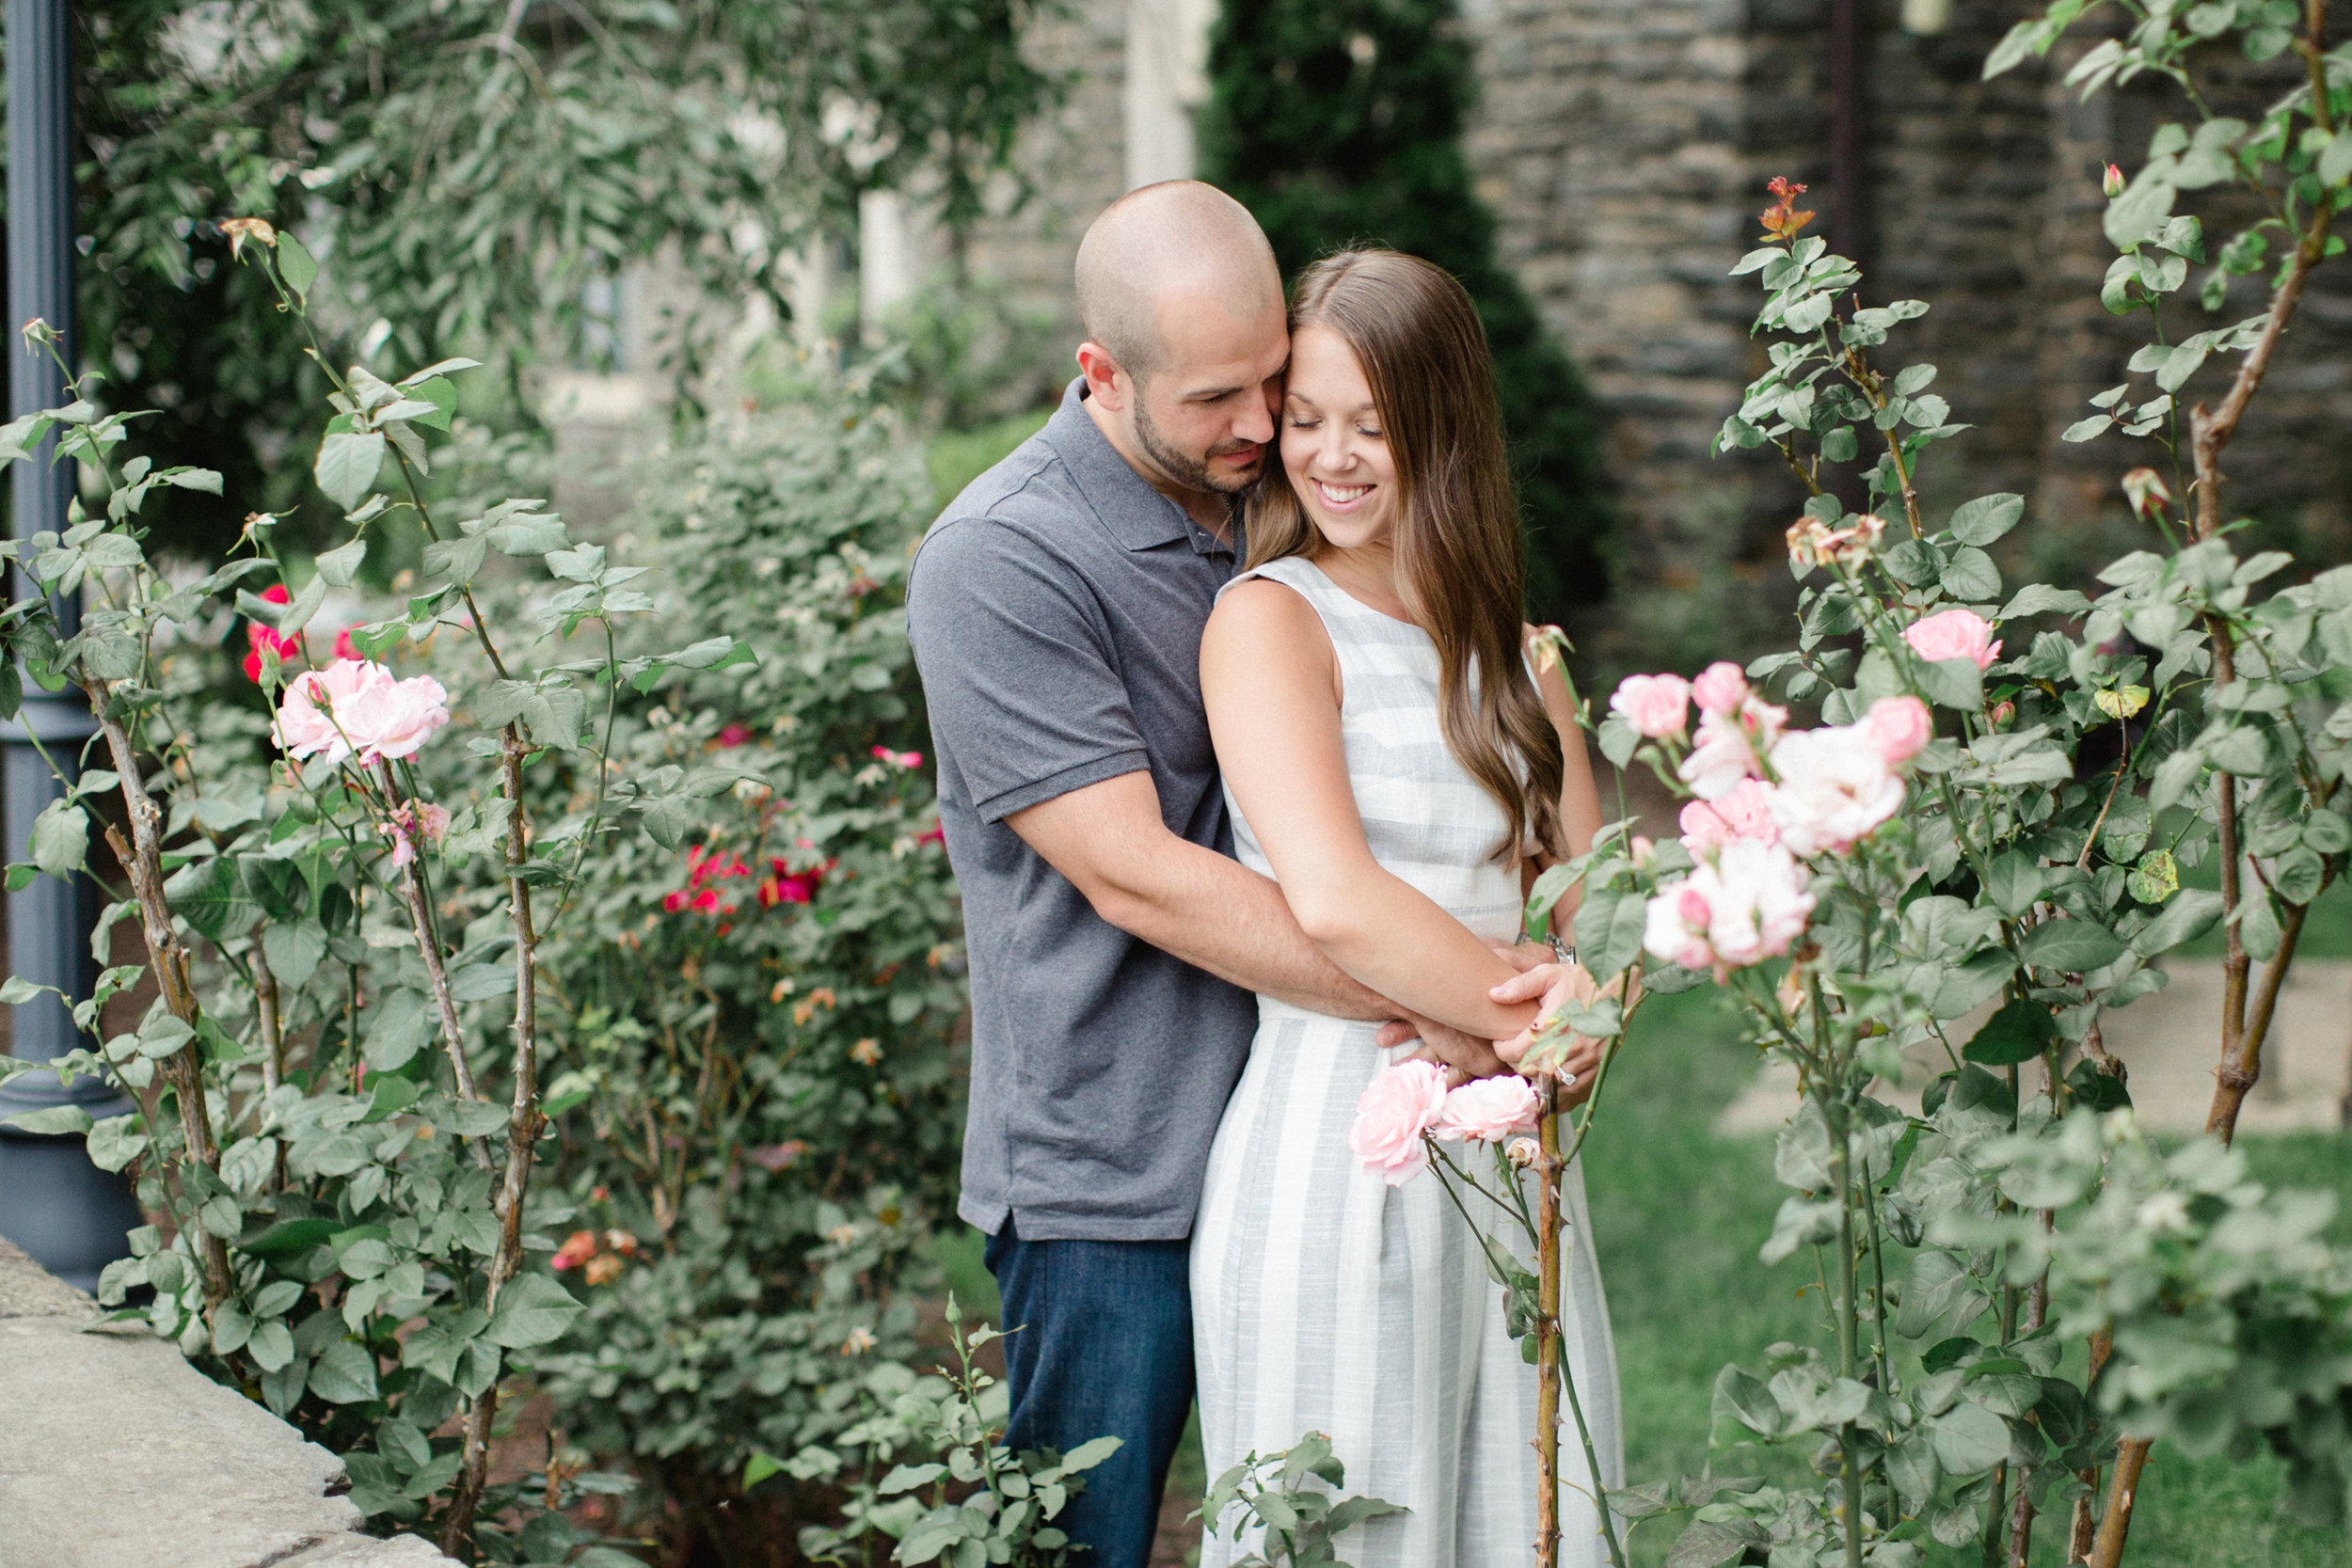 University of Scranton Engagement Session Photos_JDP-42.jpg